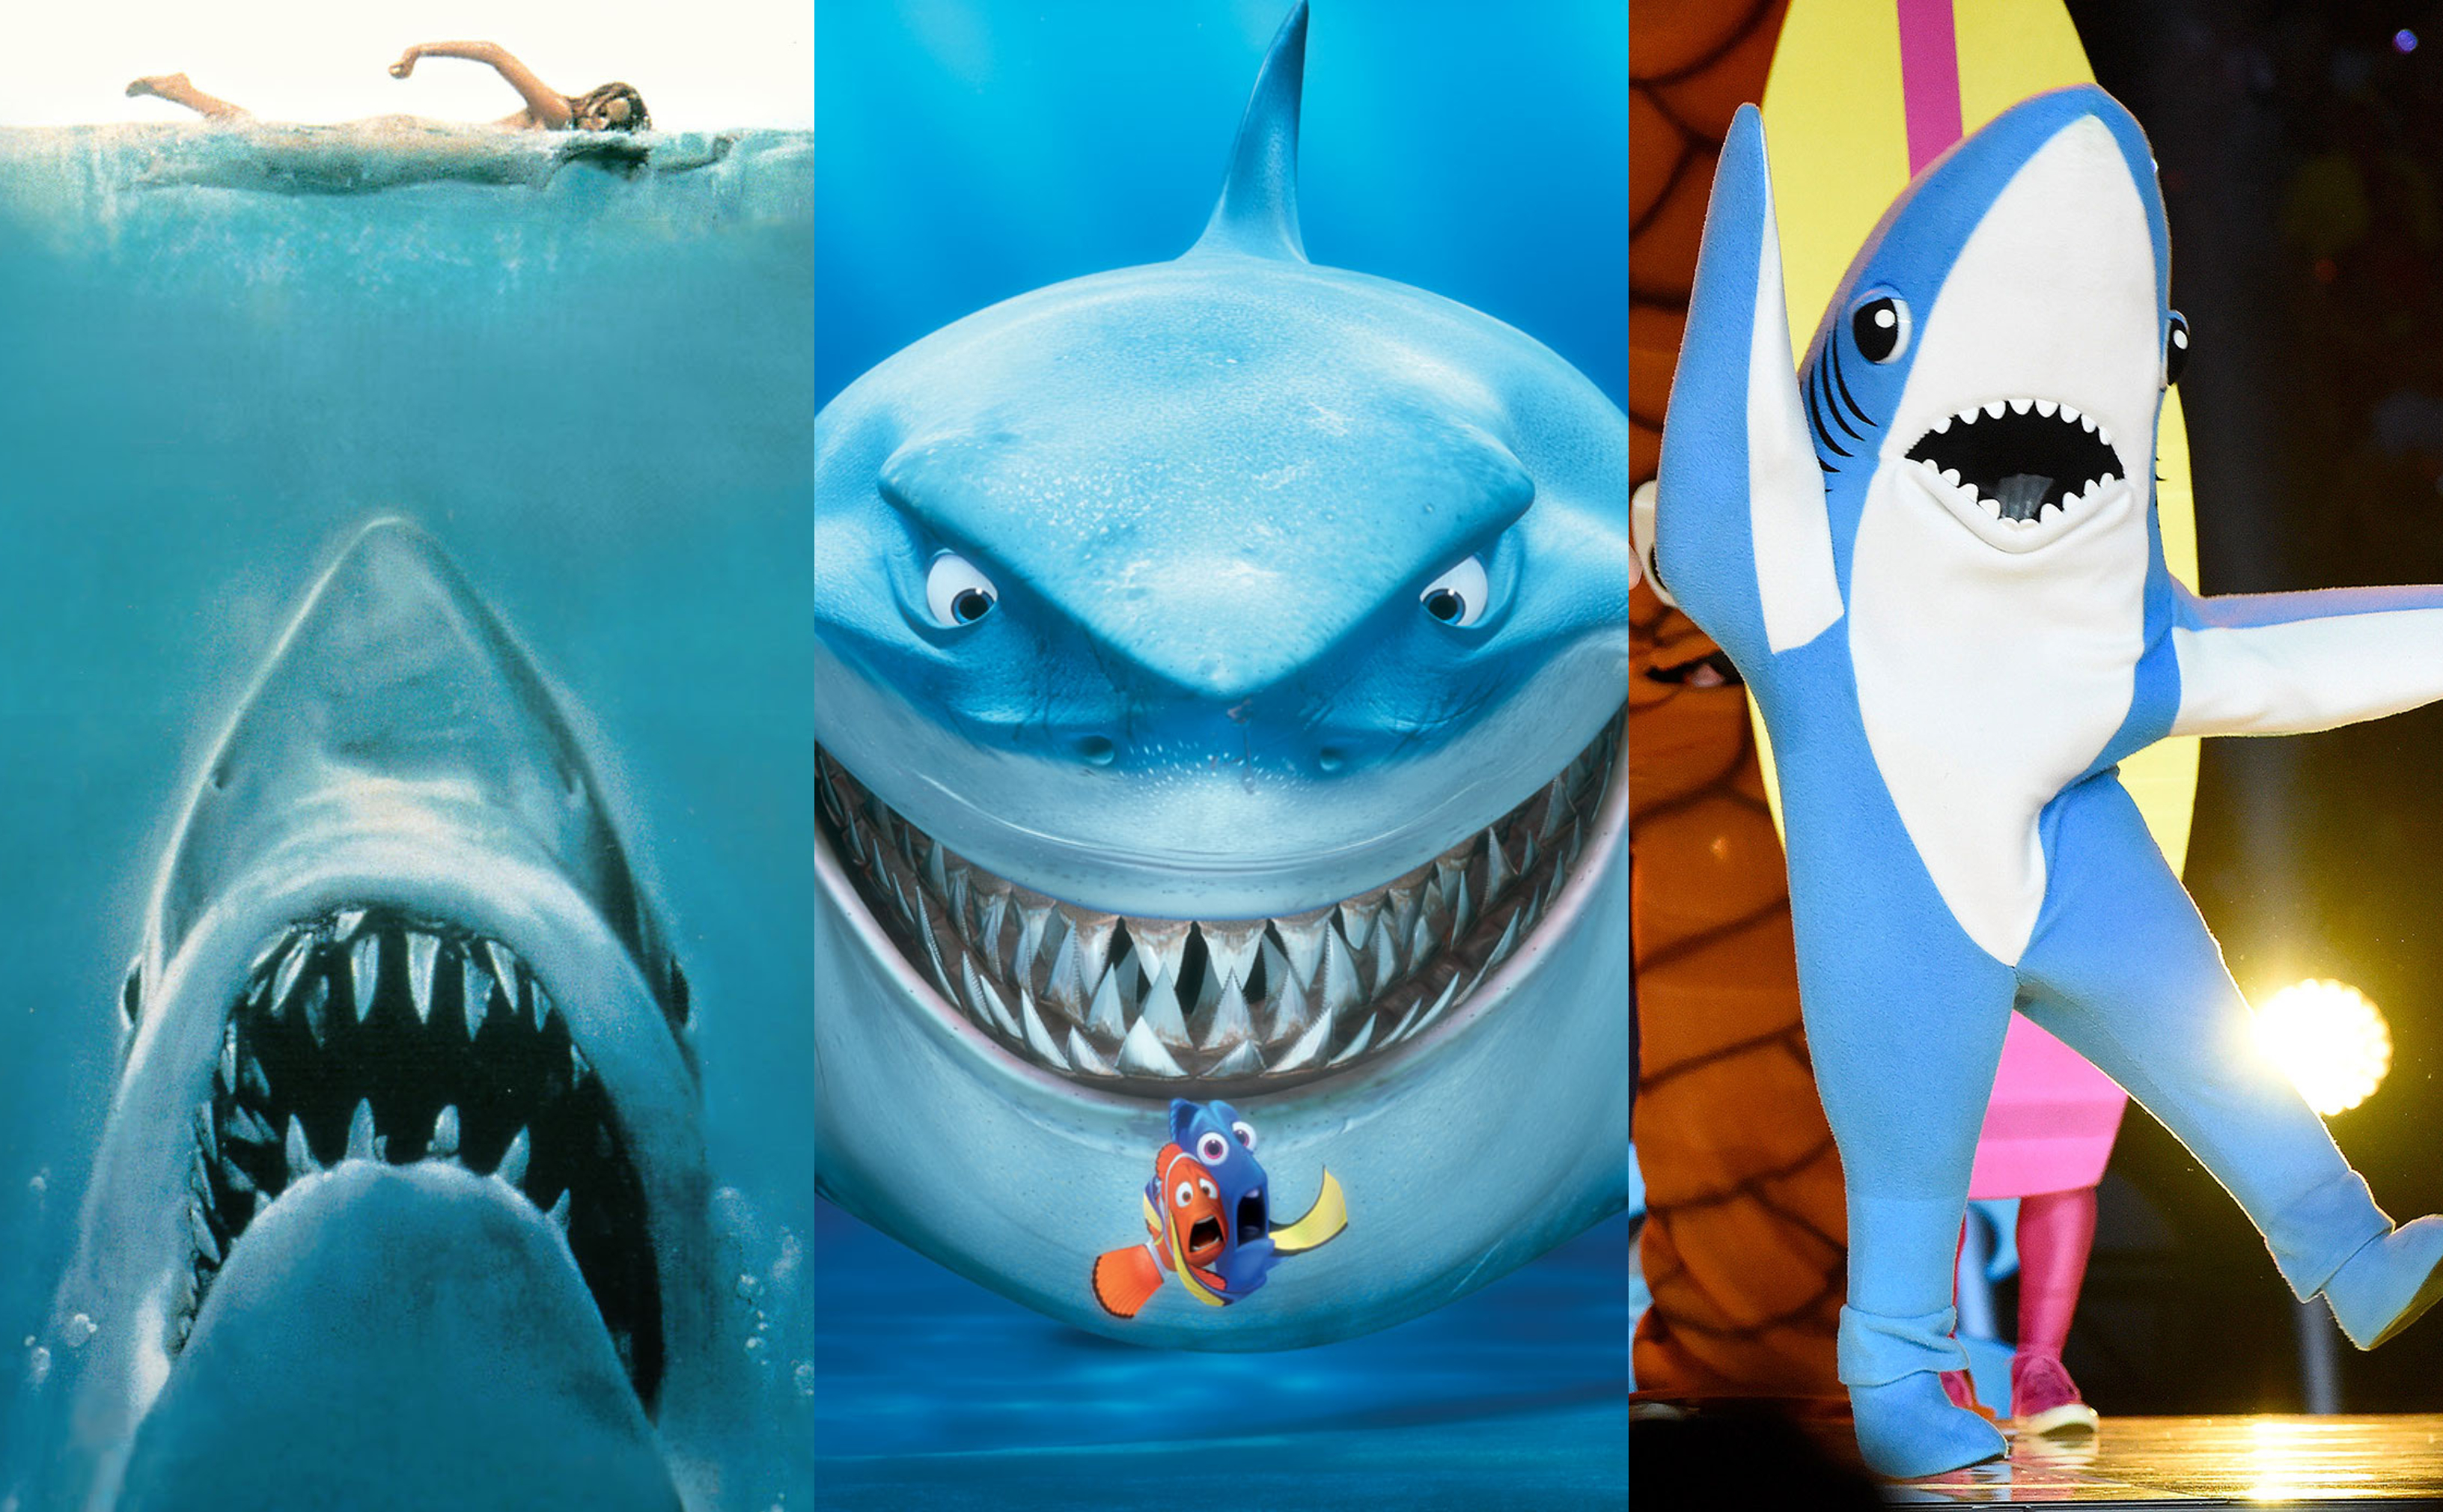 In honor of TV's greatest nature marathon Shark Week, click through our photo gallery to see 10 of our favorite pop culture sharks based in awesomeness, of course. (Photo: Release)